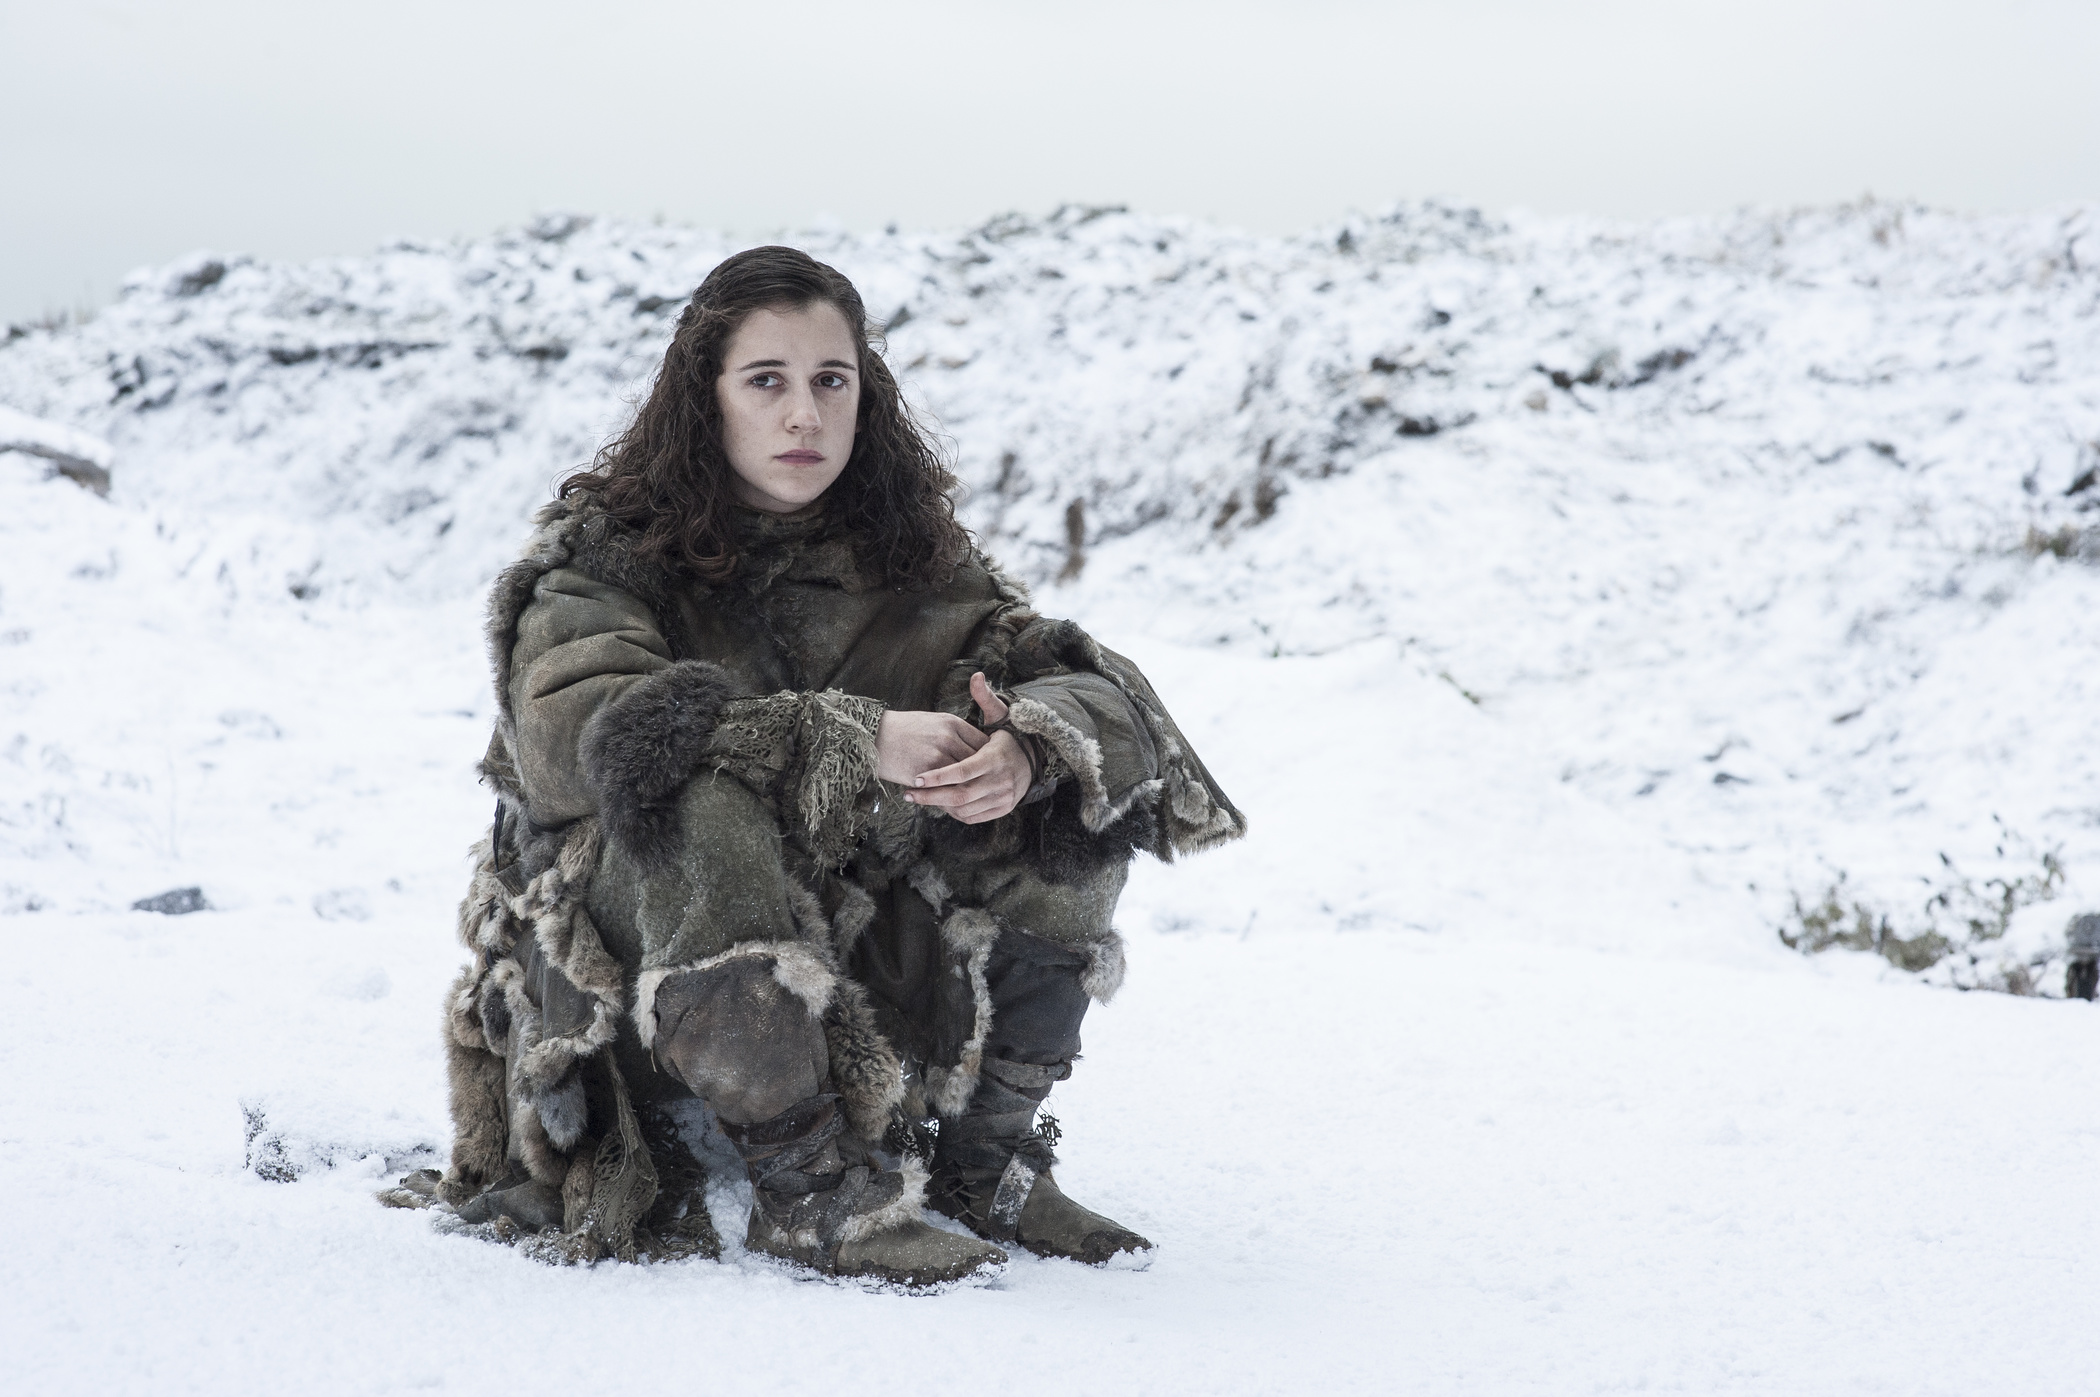 Review: \'Game of Thrones\' Season 6 Episode 2 \'Home\' Celebrates ...